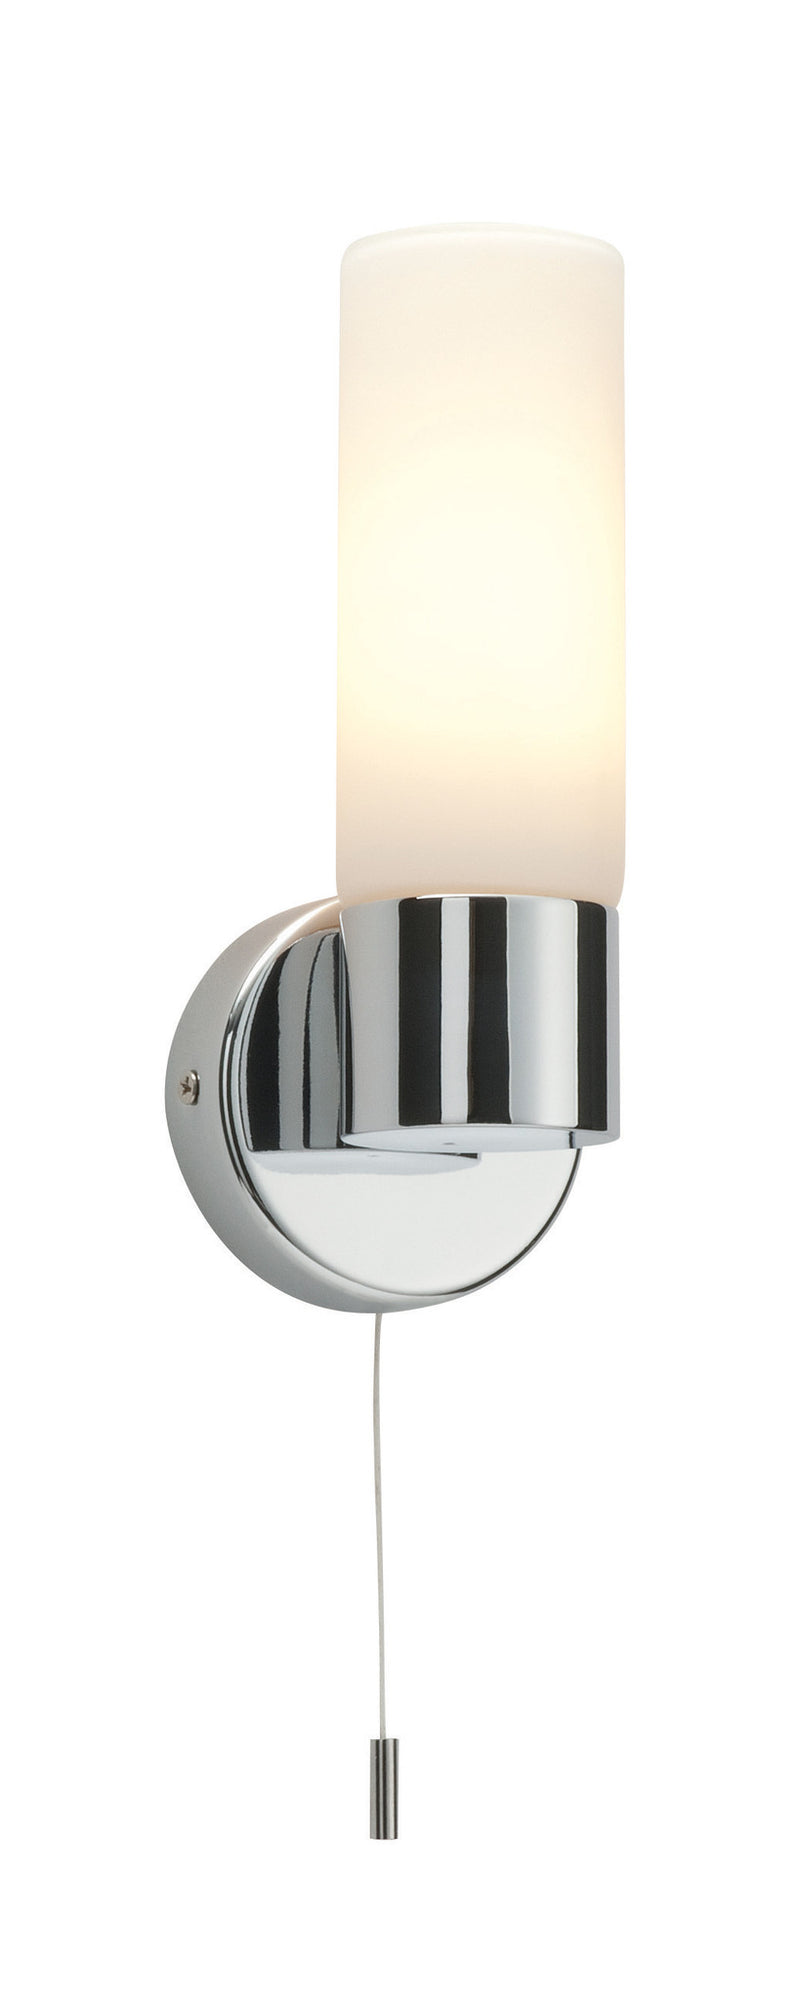 Pure Single Wall Light - bathroomlightsdirect